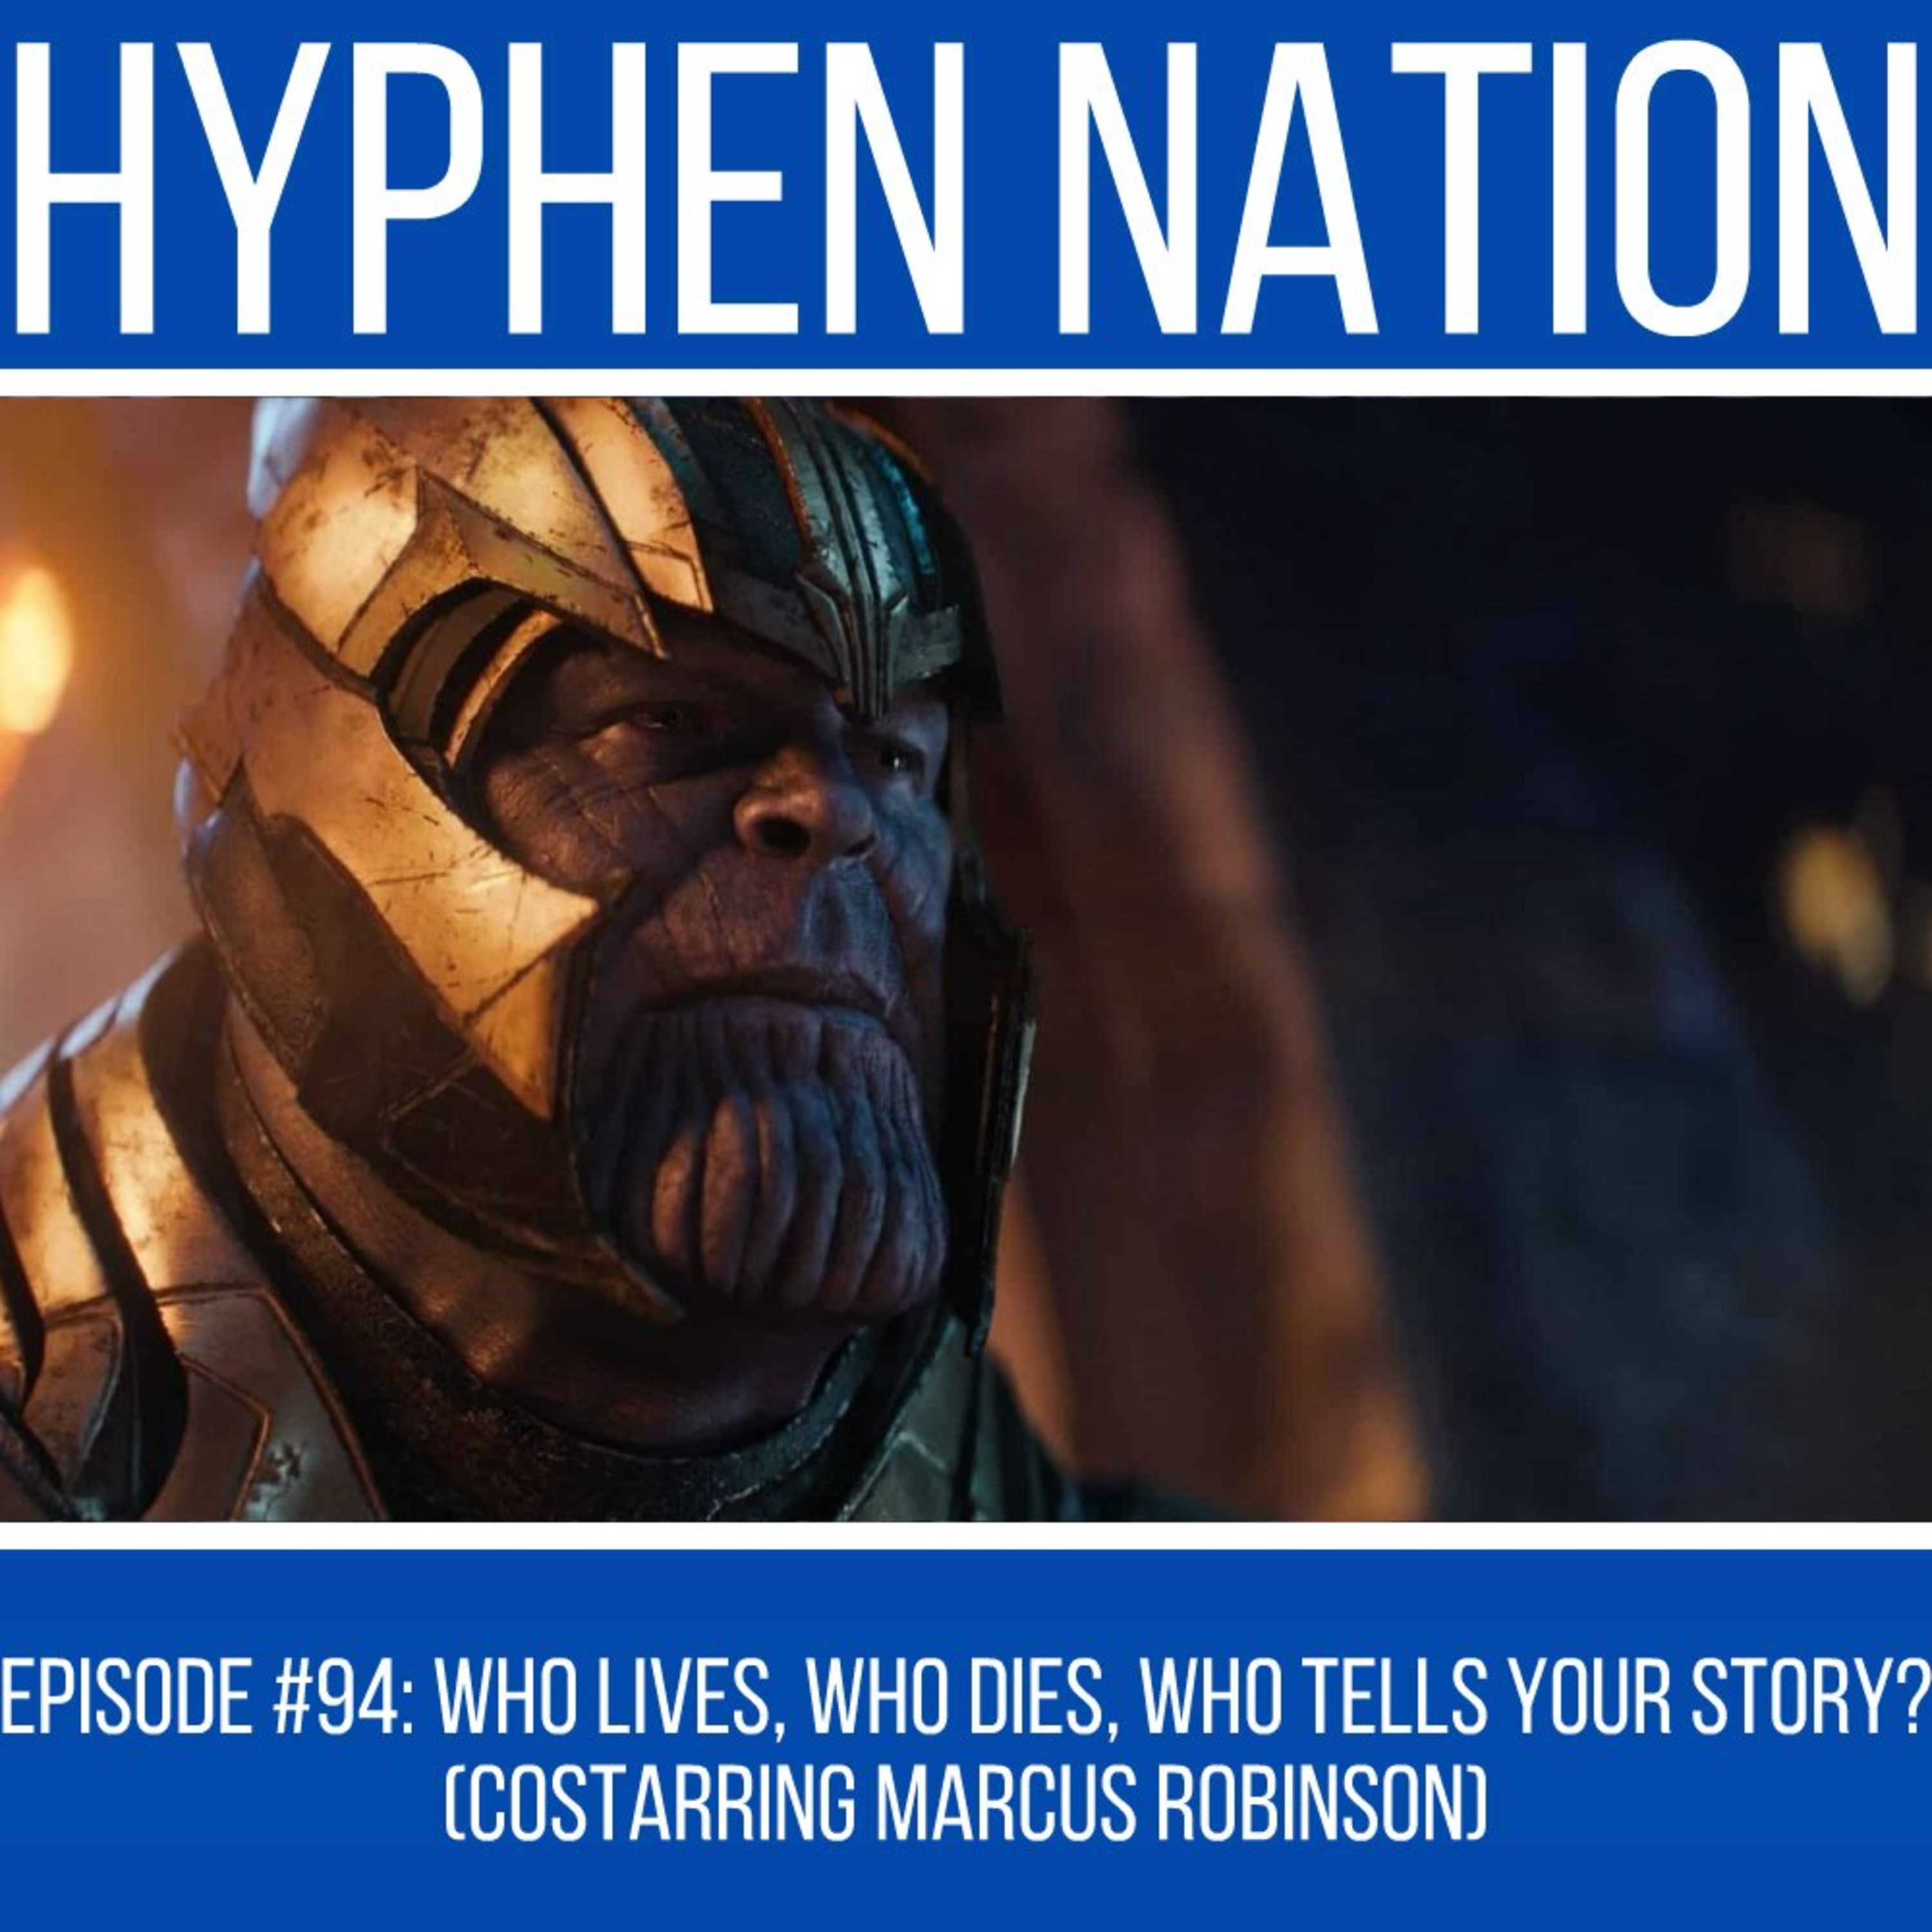 Episode #94: Who Lives, Who Dies, Who Tells Your Story? (Costarring Marcus Robinson)